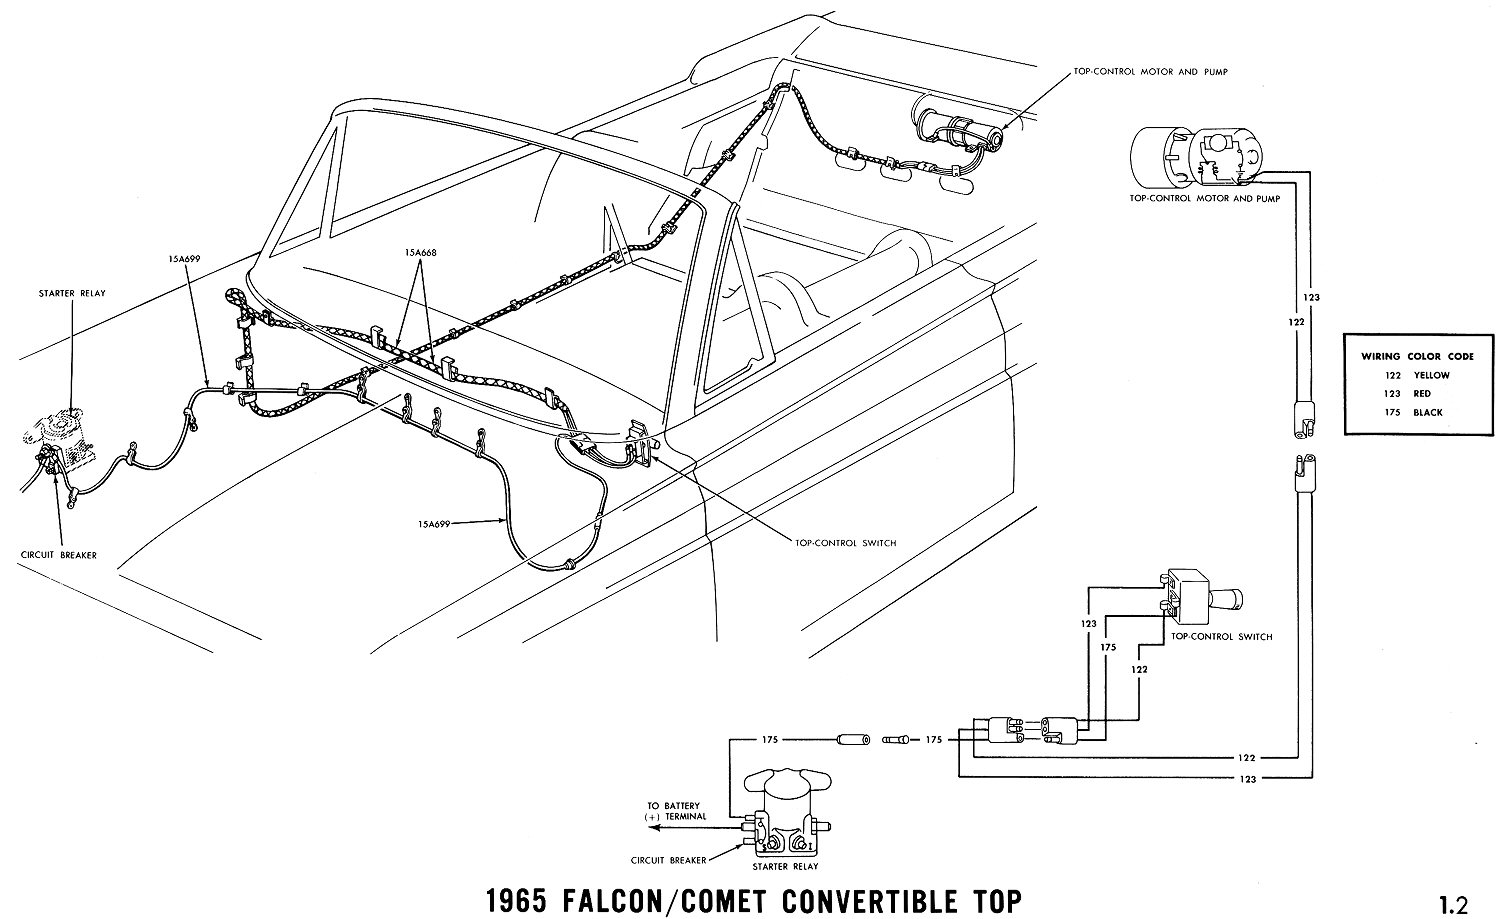 [SCHEMATICS_44OR]  5277 1966 Ford Mustang Color Wiring Diagram | Wiring Library | 1966 Falcon Wiring Diagrams |  | Wiring Library